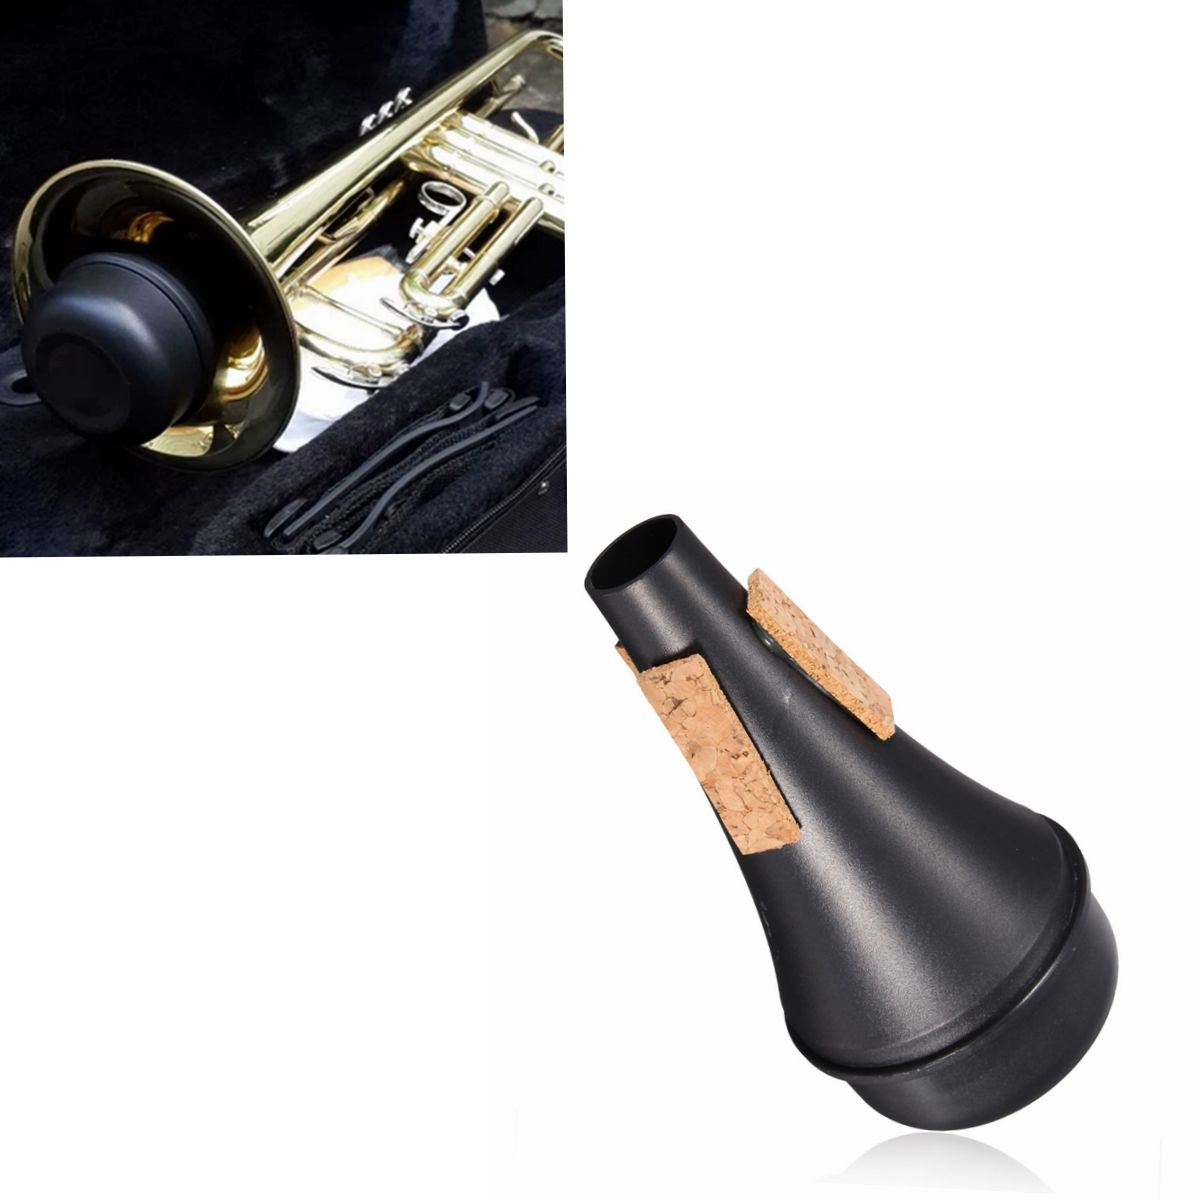 trumpet straight practice cup mute lightweight professional instrument part ebay. Black Bedroom Furniture Sets. Home Design Ideas